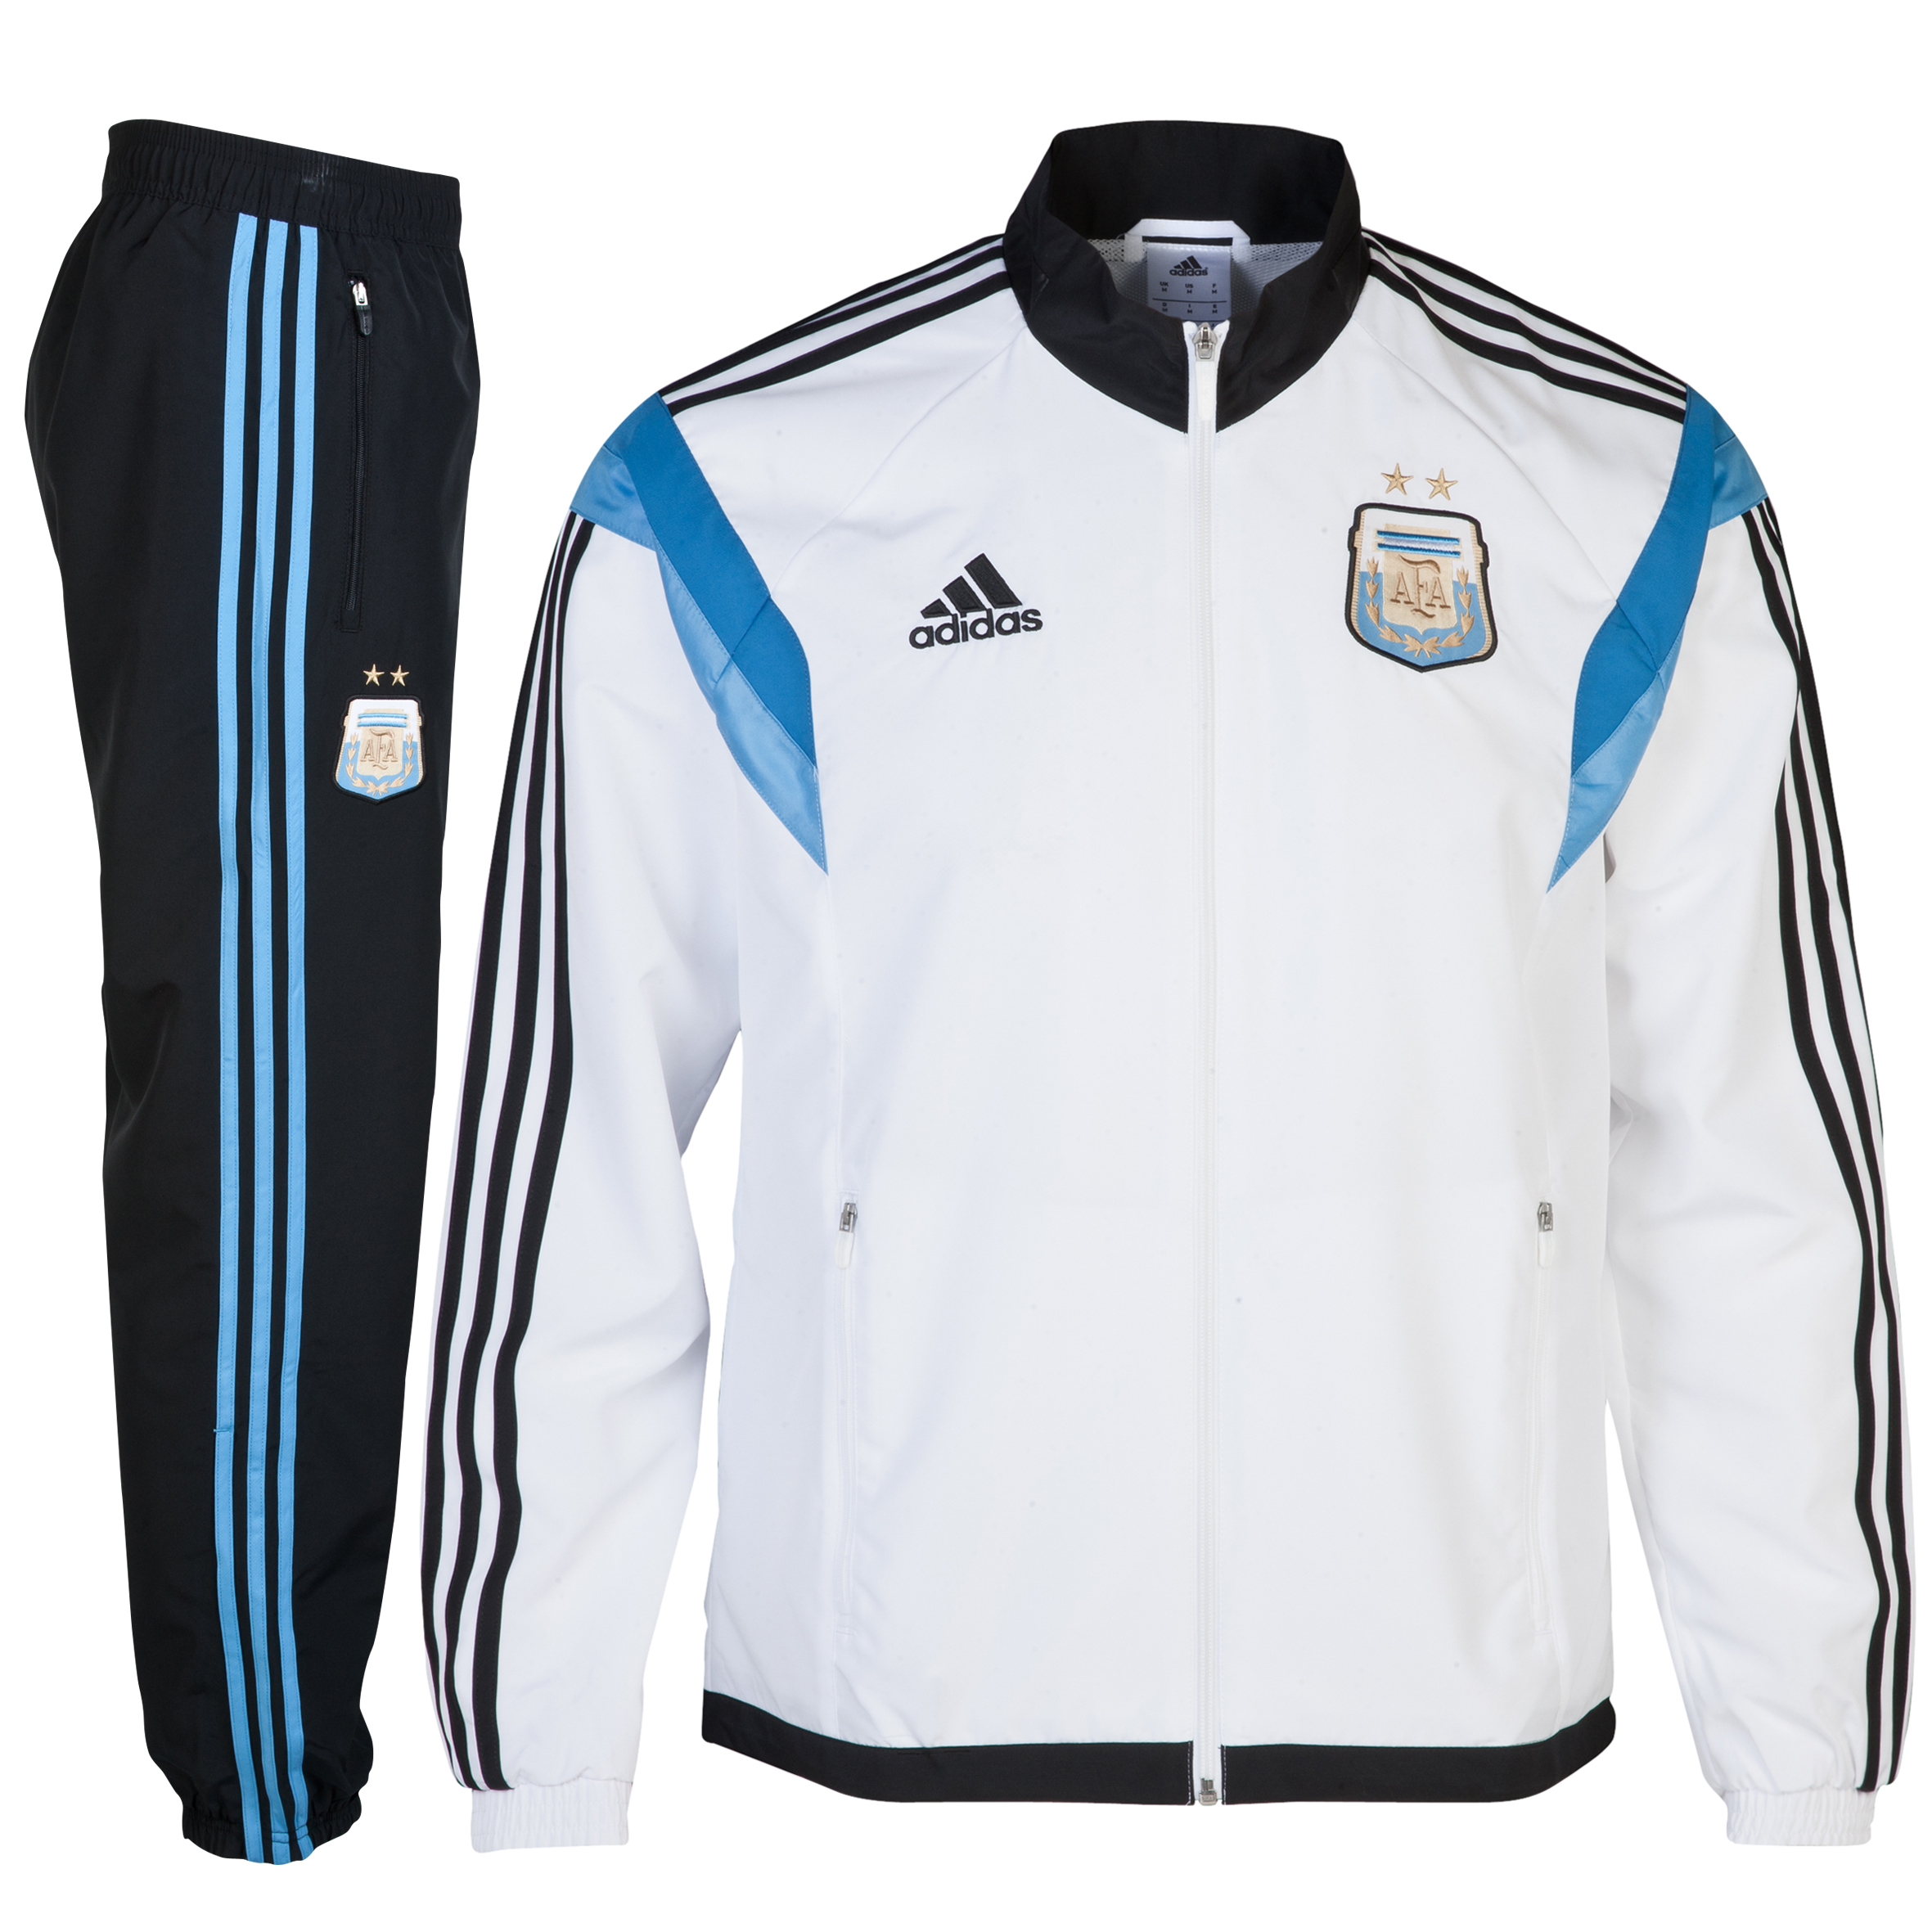 Argentina Presentation Suit - White/Black